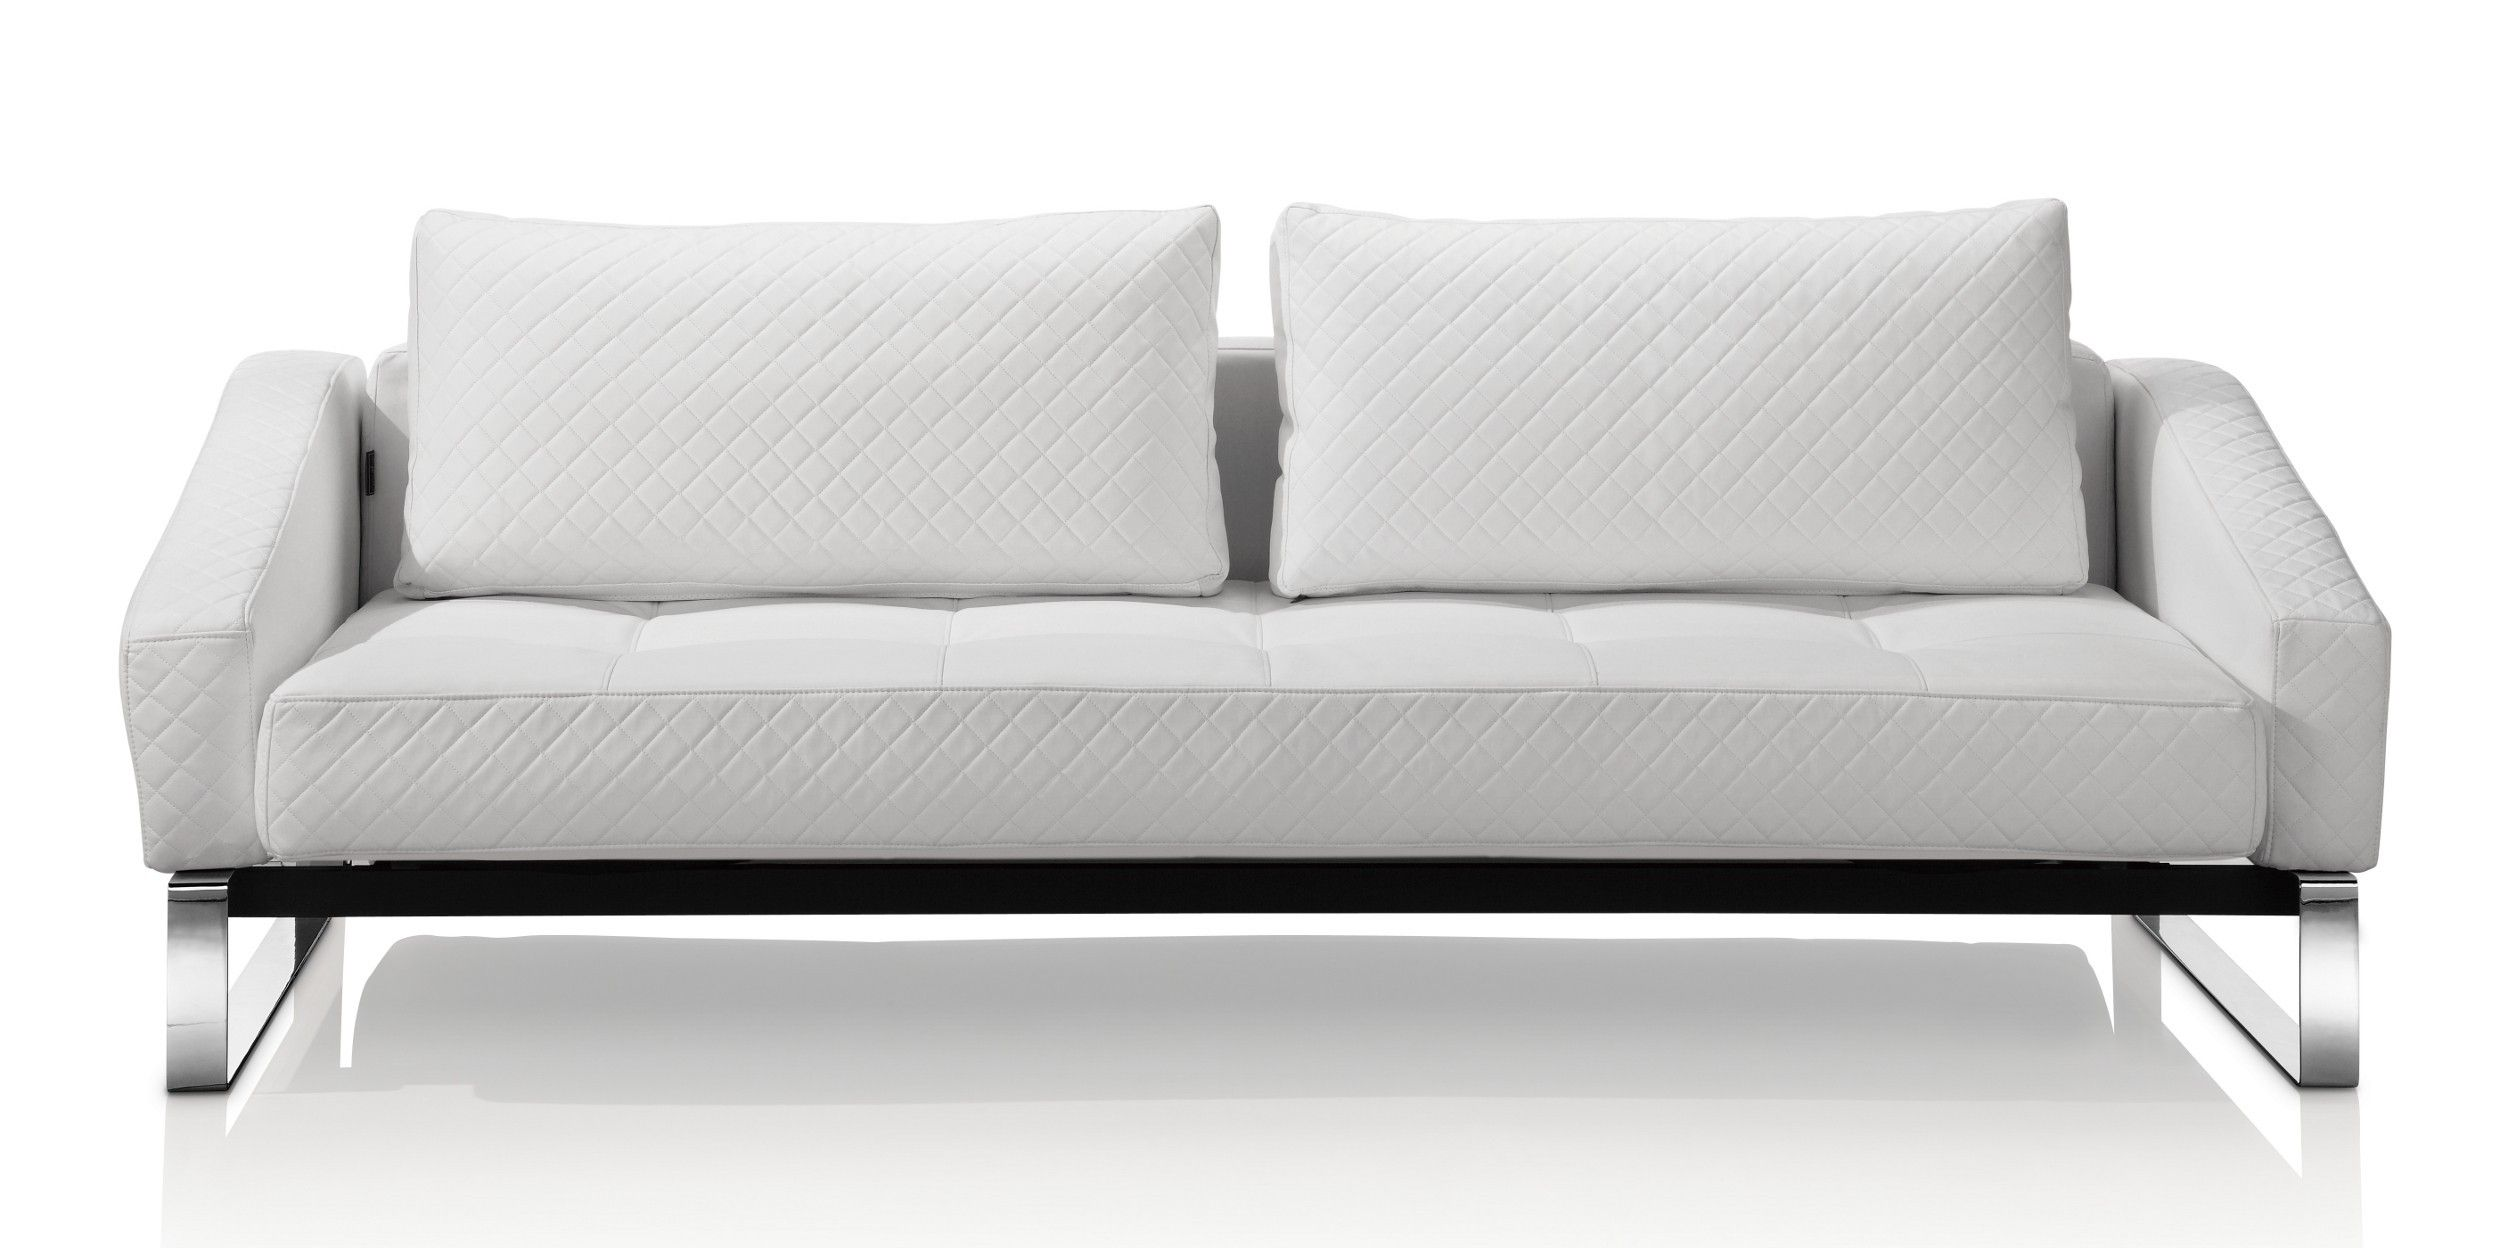 Modern Sofa Bed Within Modern Leather Sofa Beds Design Ideas Modernes Ledersofa Bequemes Schlafsofa Moderne Couch